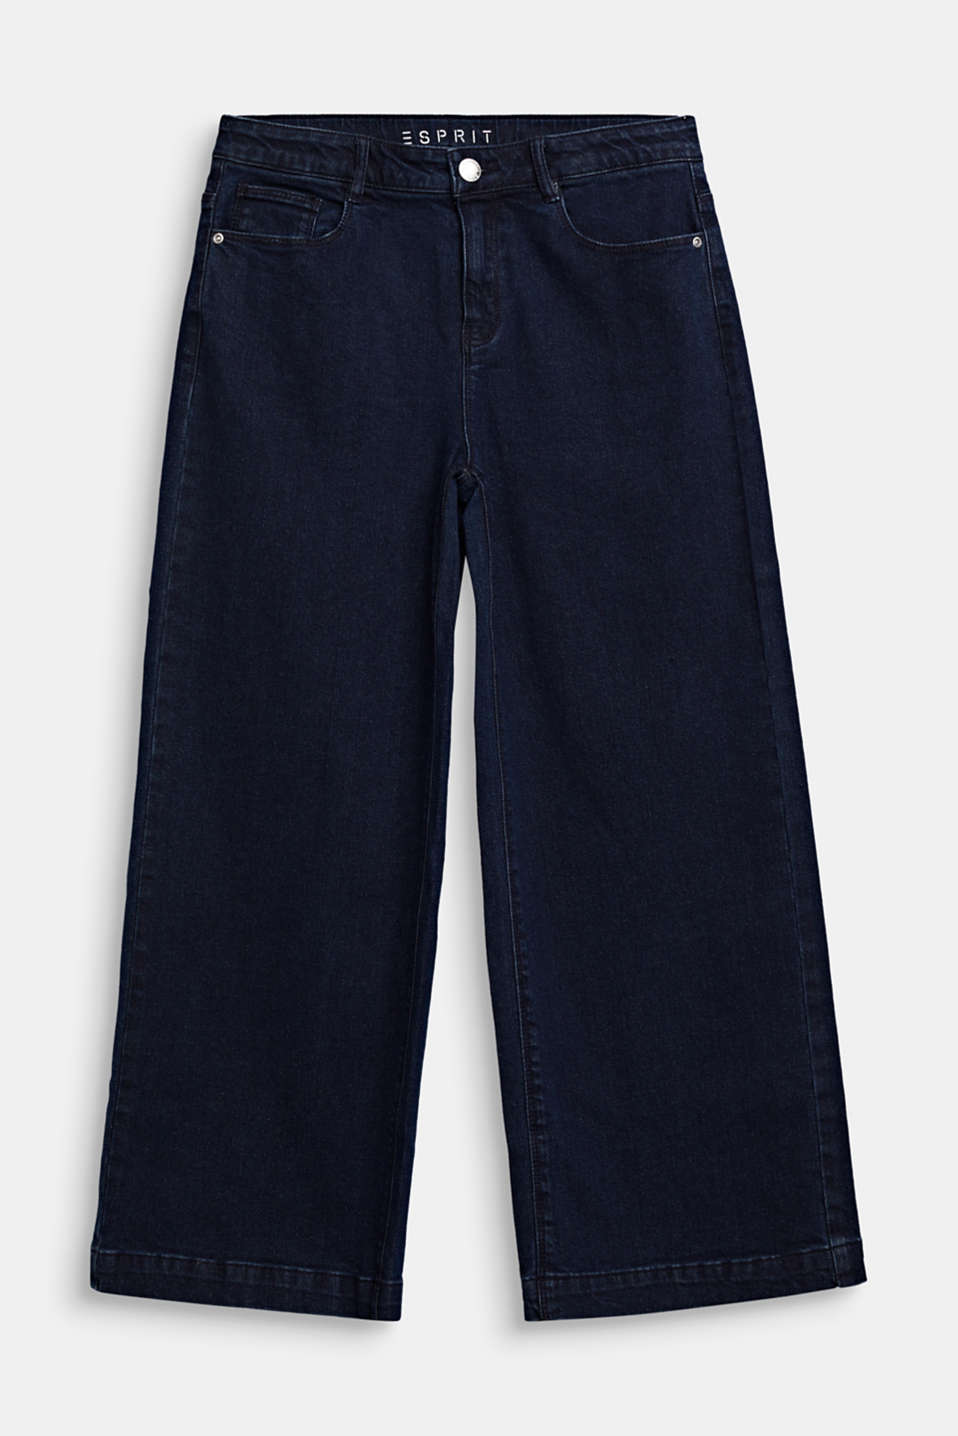 Esprit - Ankle-length culottes made of stretch denim